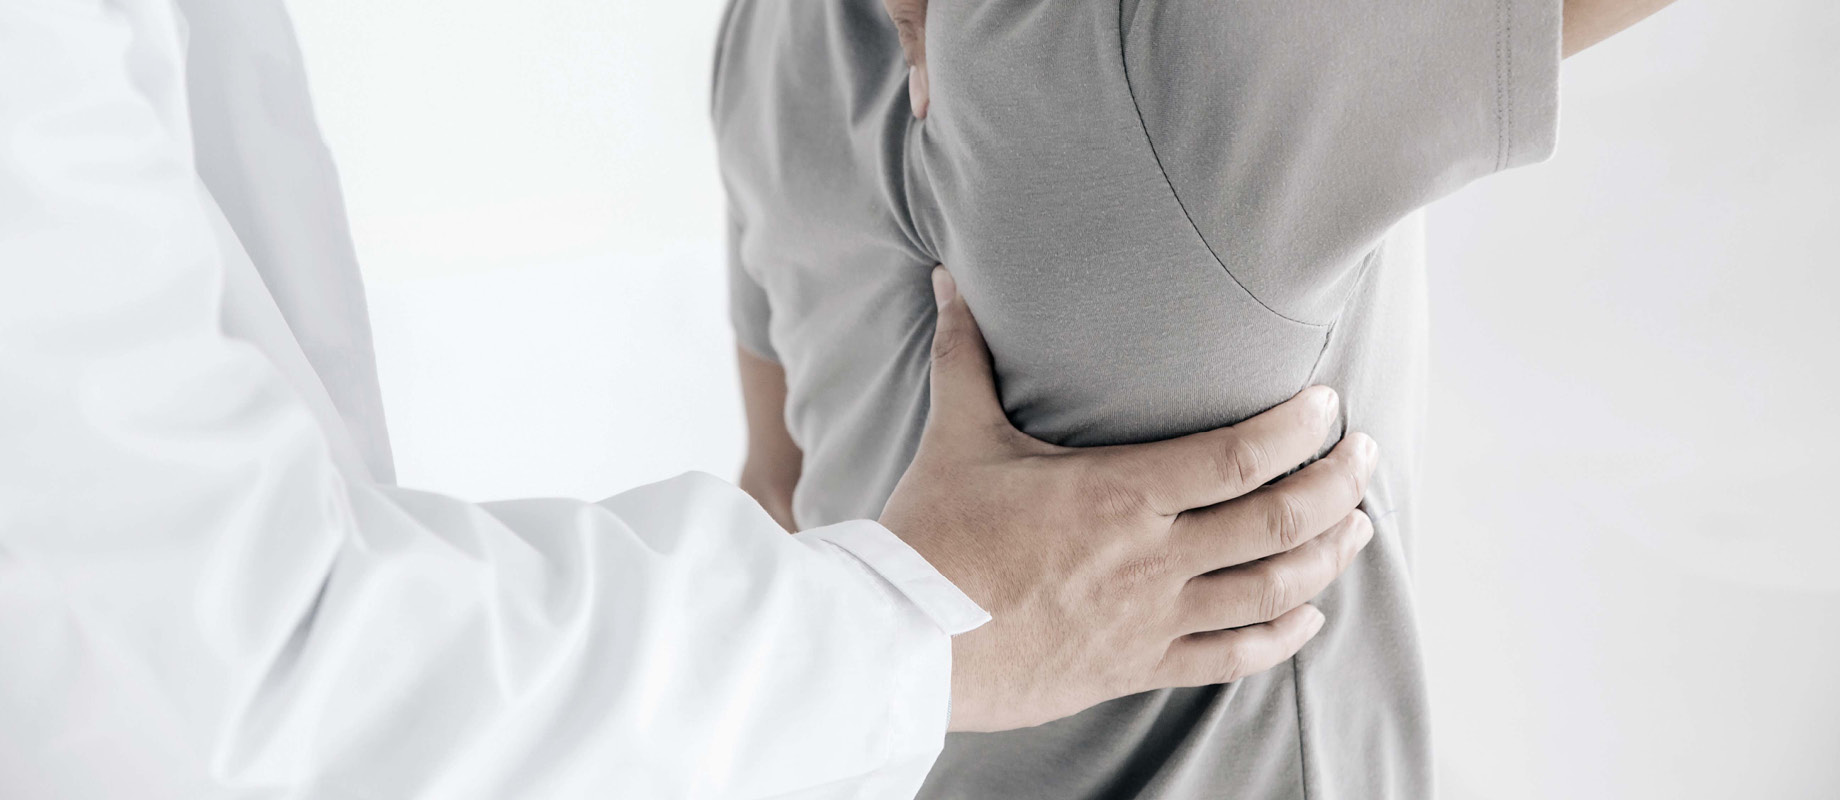 Understanding Osteopathic Manipulative Treatment and E/M Billing Risks